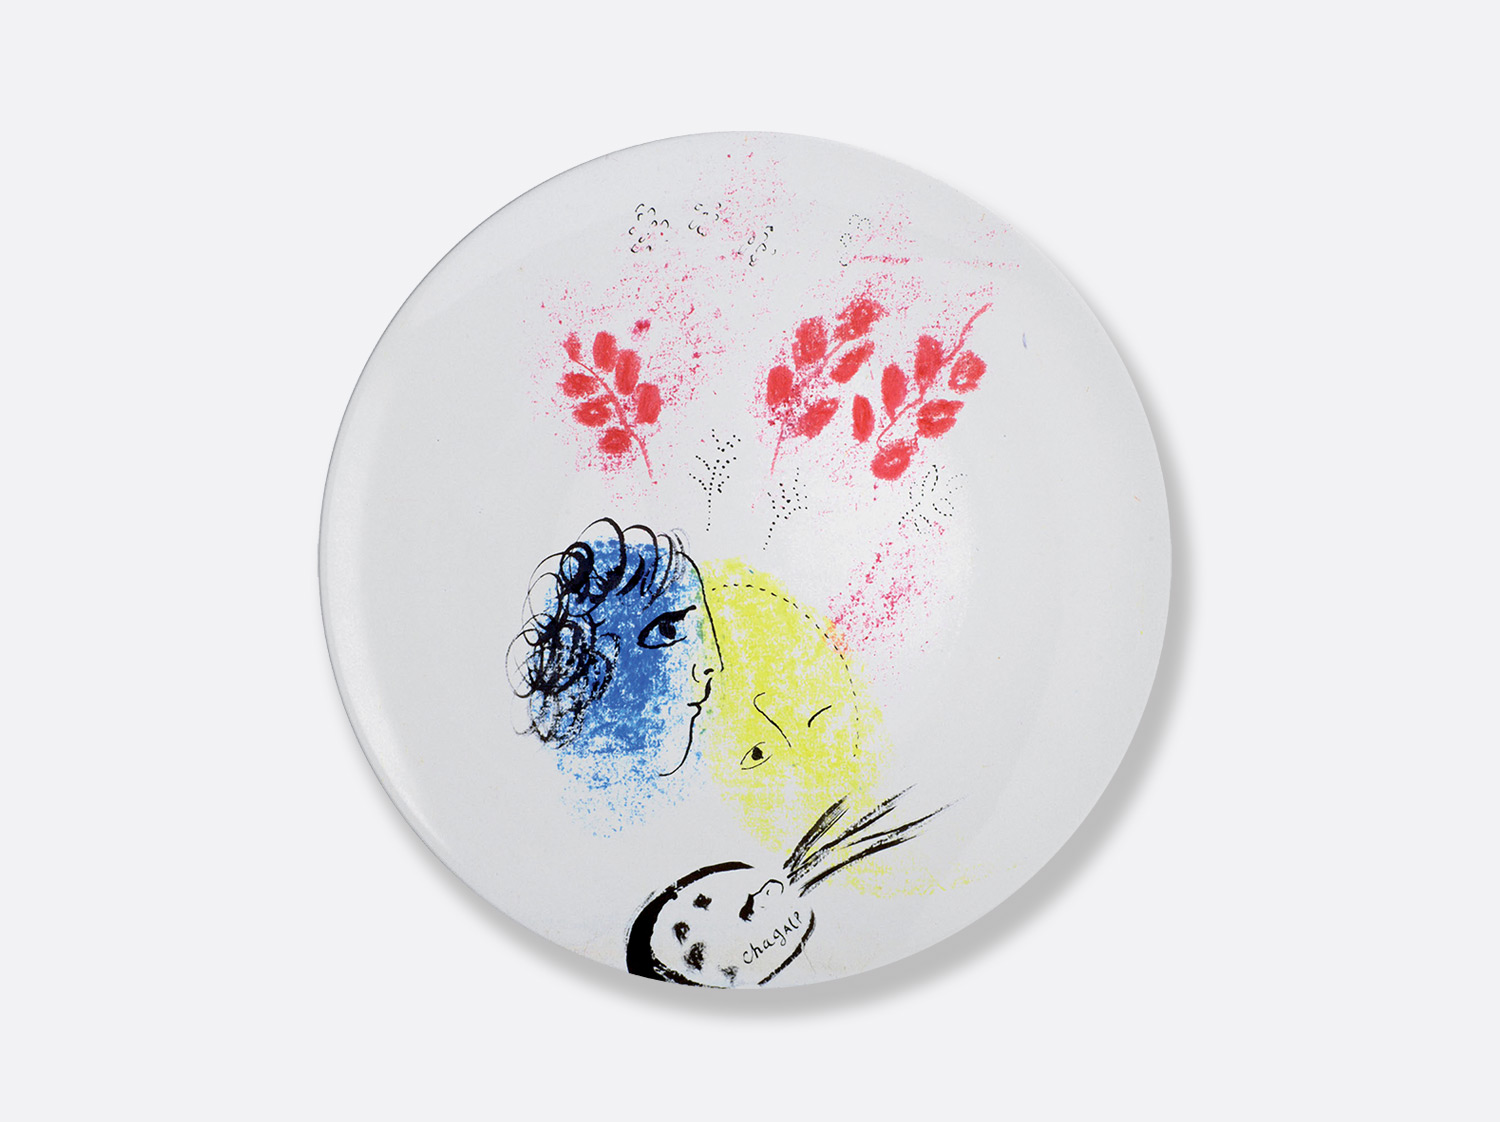 Collectionmarcchagall assiette26double %c2%a9 adagp  paris  2020   chagall